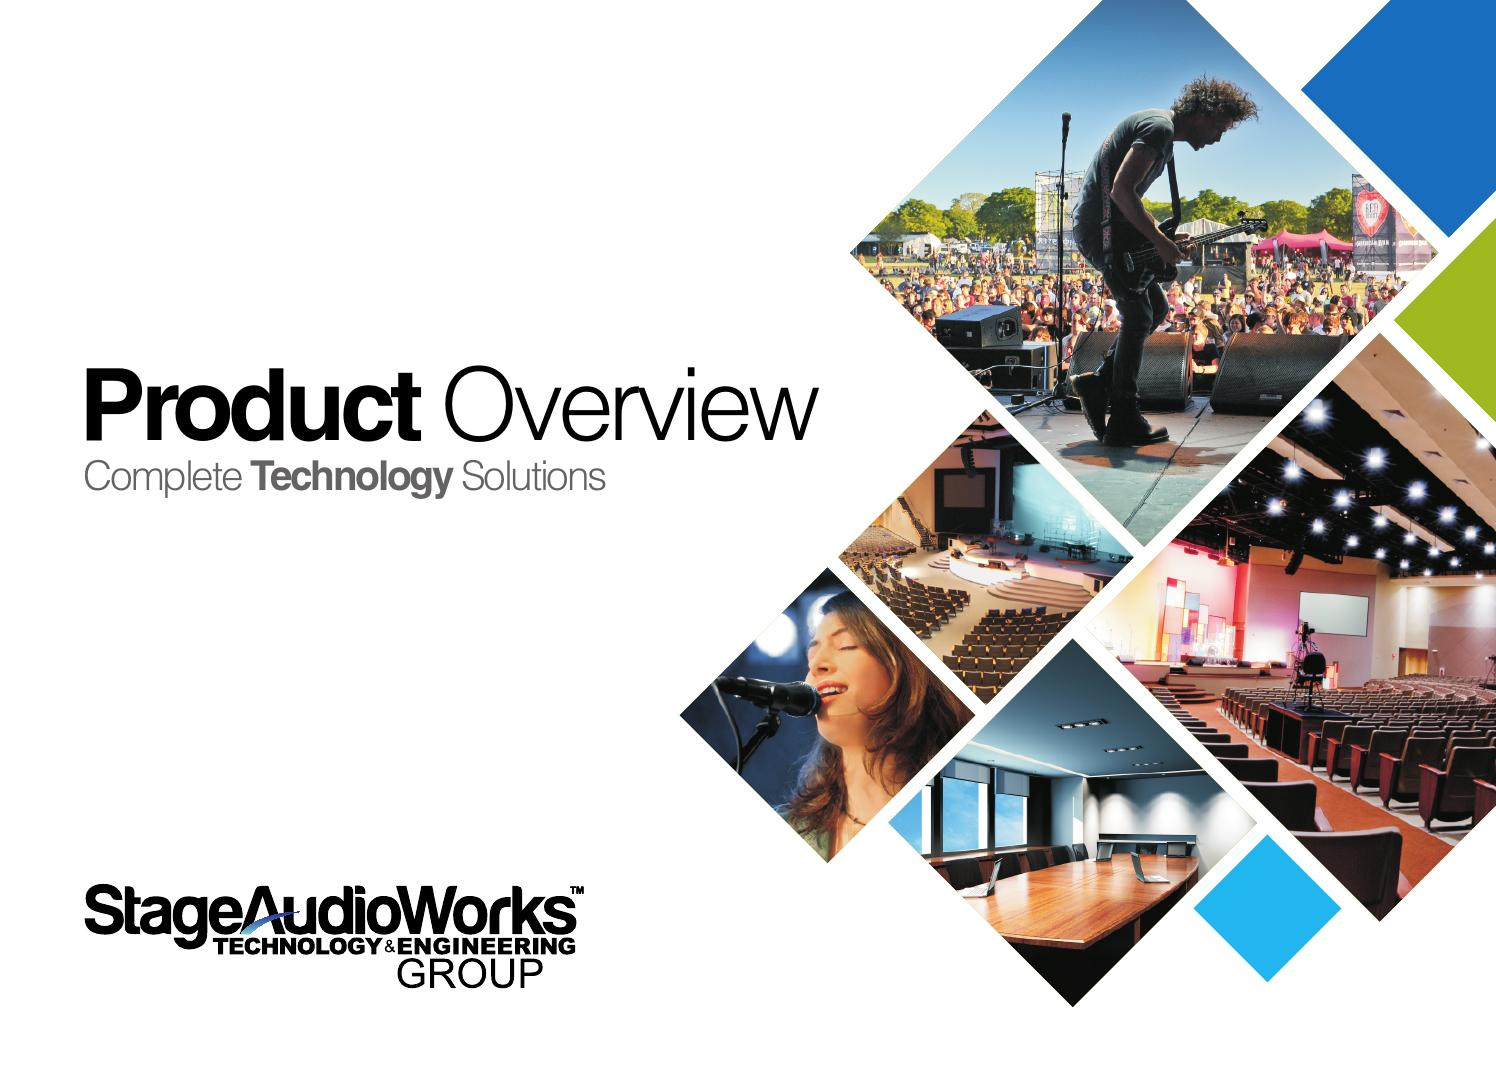 StageAudioWorks - Product Overview by Riggsy83 - issuu